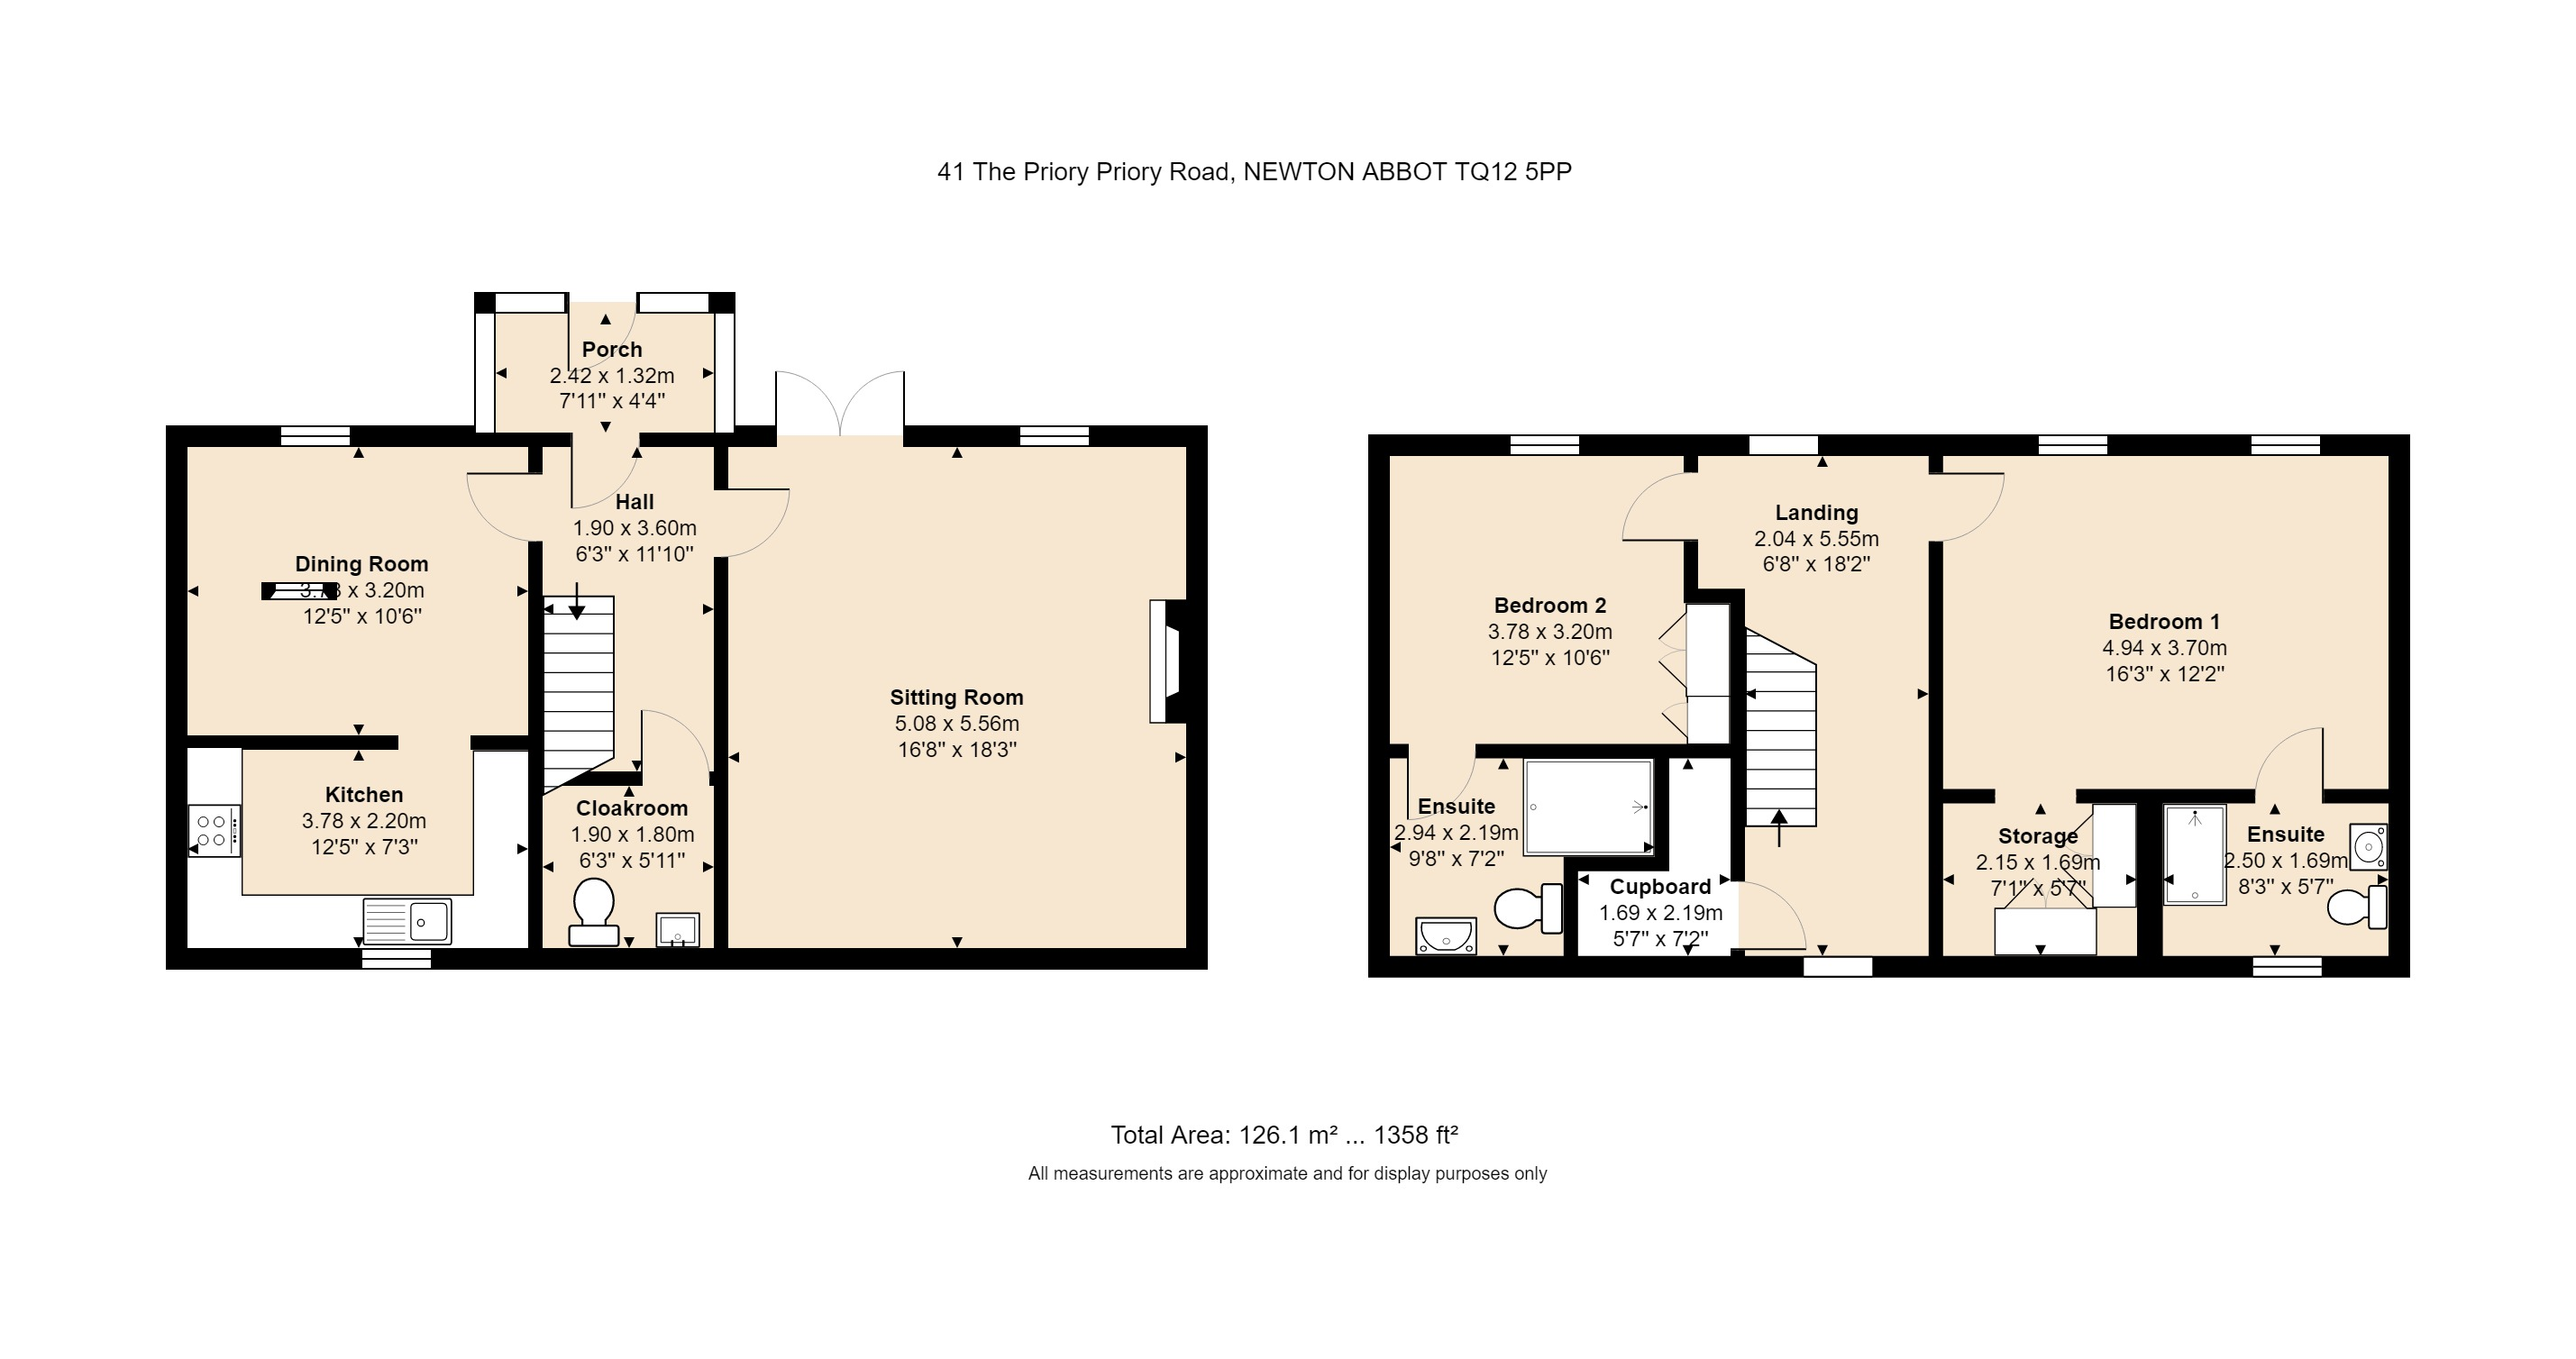 41 The Priory Floorplan